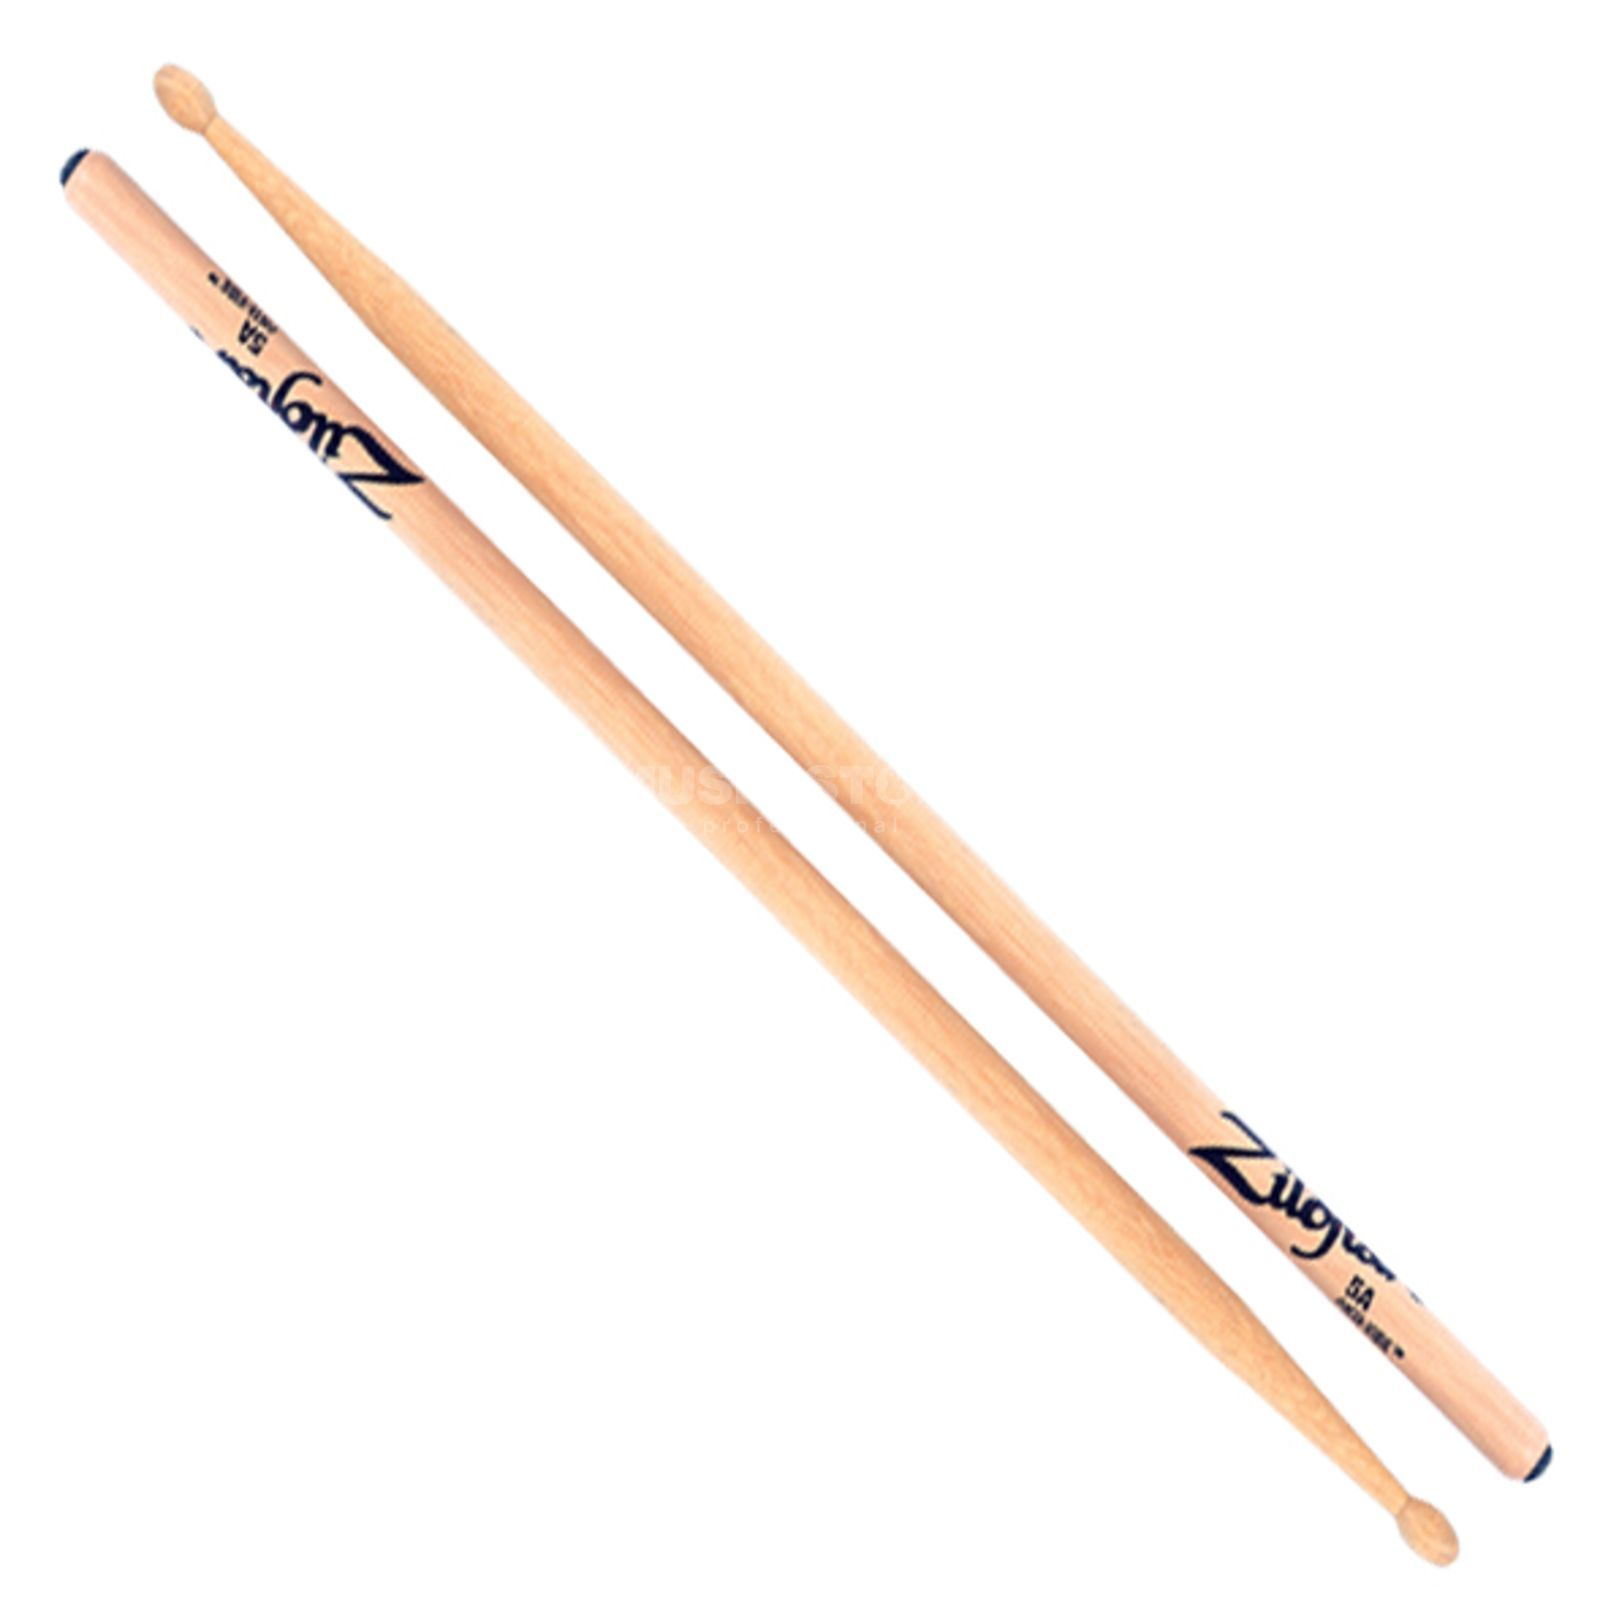 Zildjian Anti-Vibe 5A Sticks, Wood Tip Product Image